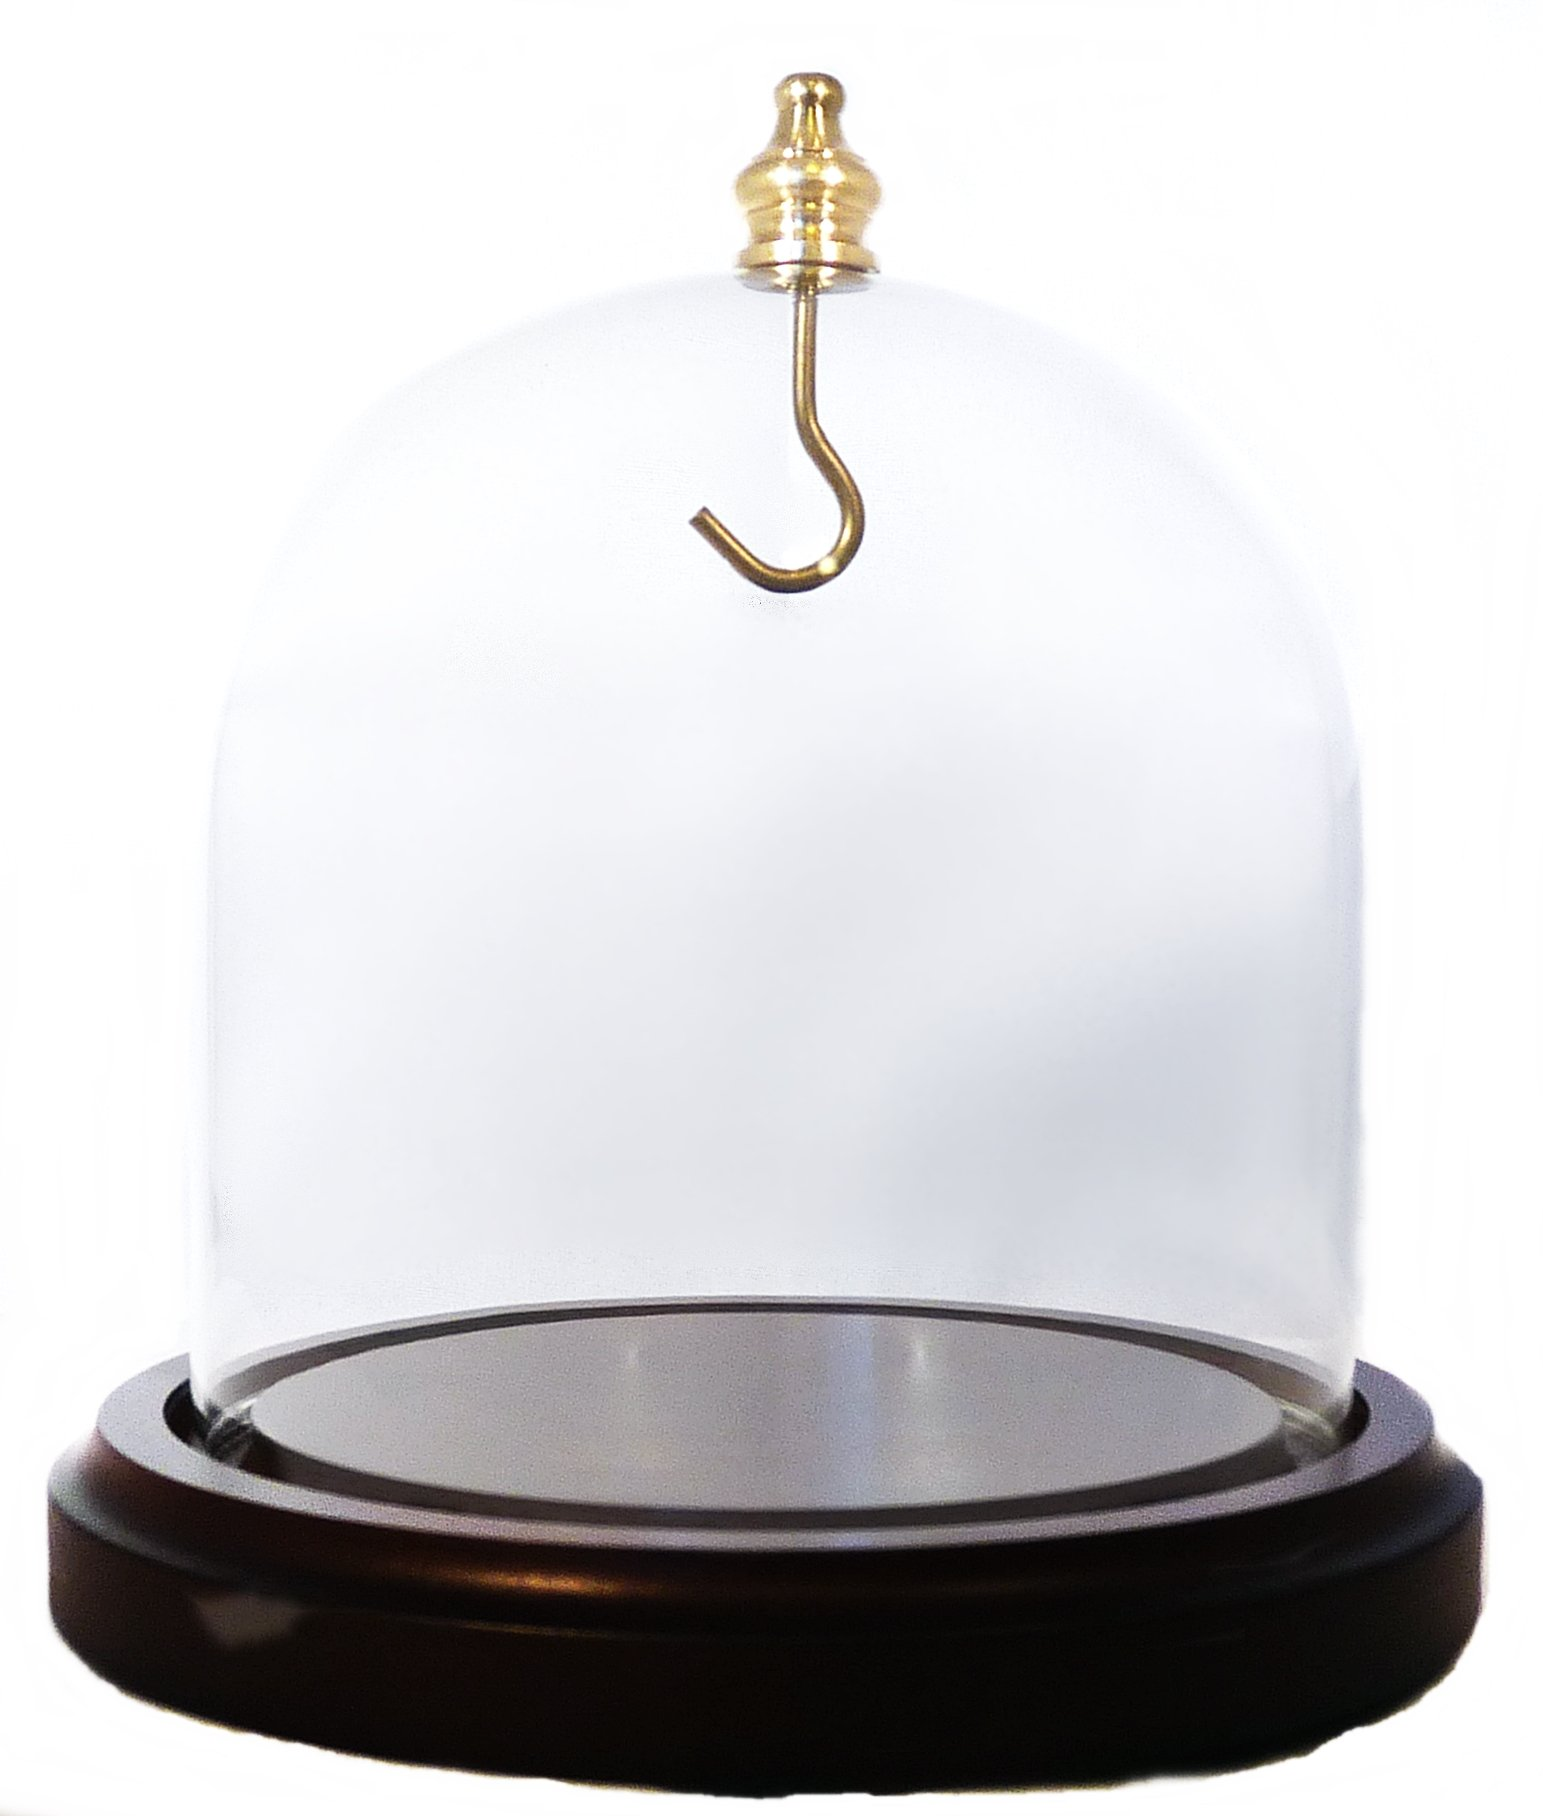 Large 4''x4'' Pocket Watch Glass Display Dome Walnut Base & Gold Hook by Dueber Watch Co